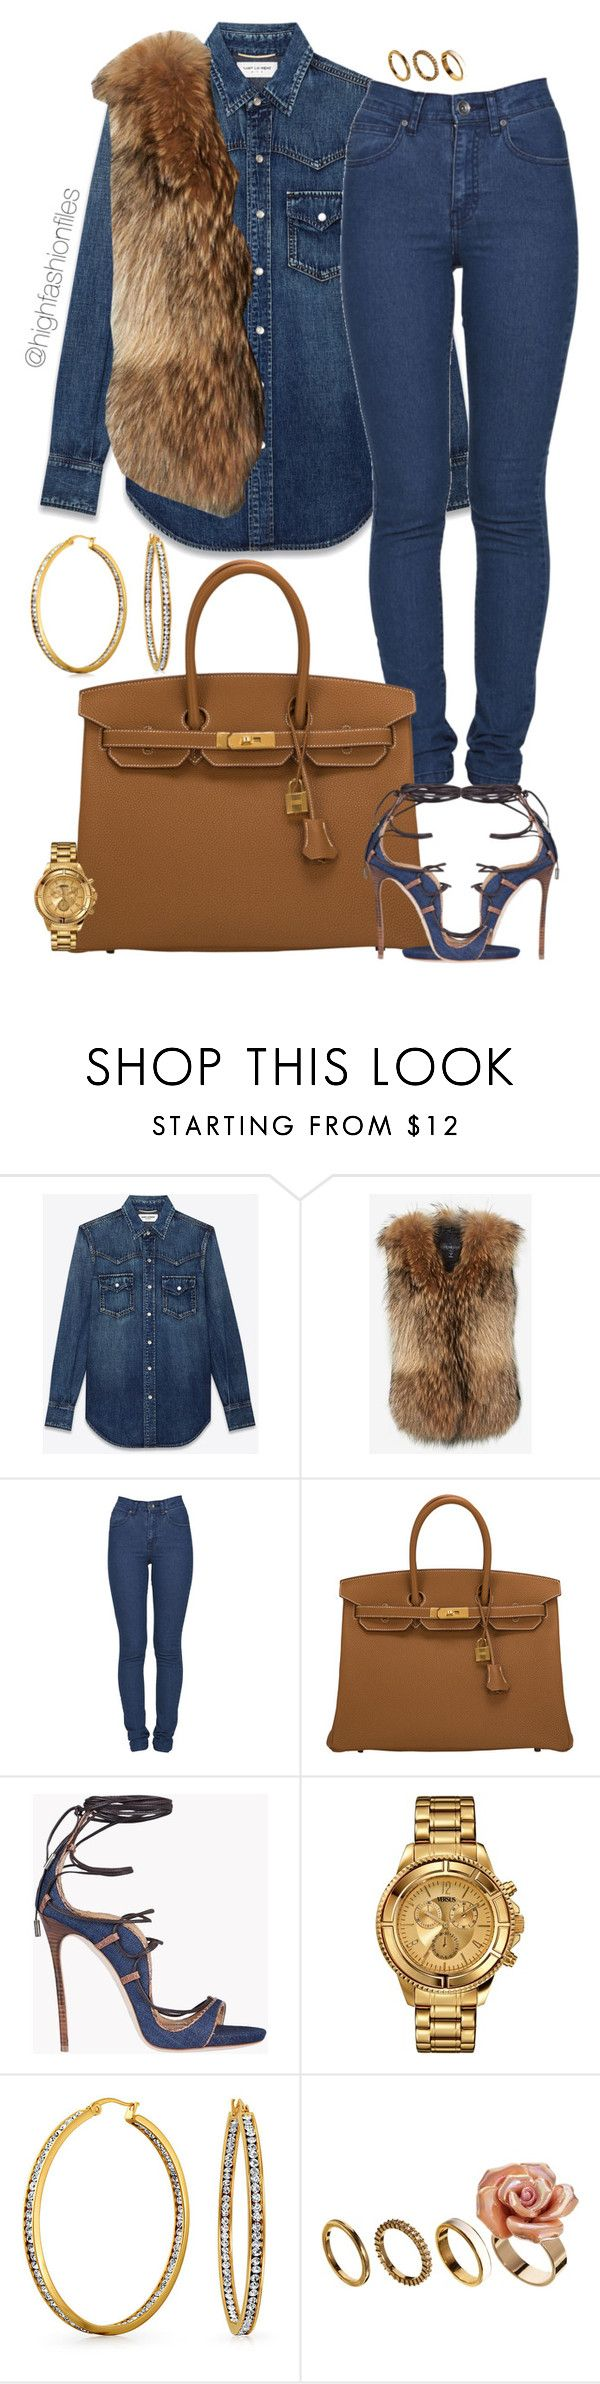 """Untitled #2688"" by highfashionfiles ❤ liked on Polyvore featuring Yves Saint Laurent, Adrienne Landau, Dr. Denim, Hermès, Dsquared2, Versus, Bling Jewelry and ALDO"